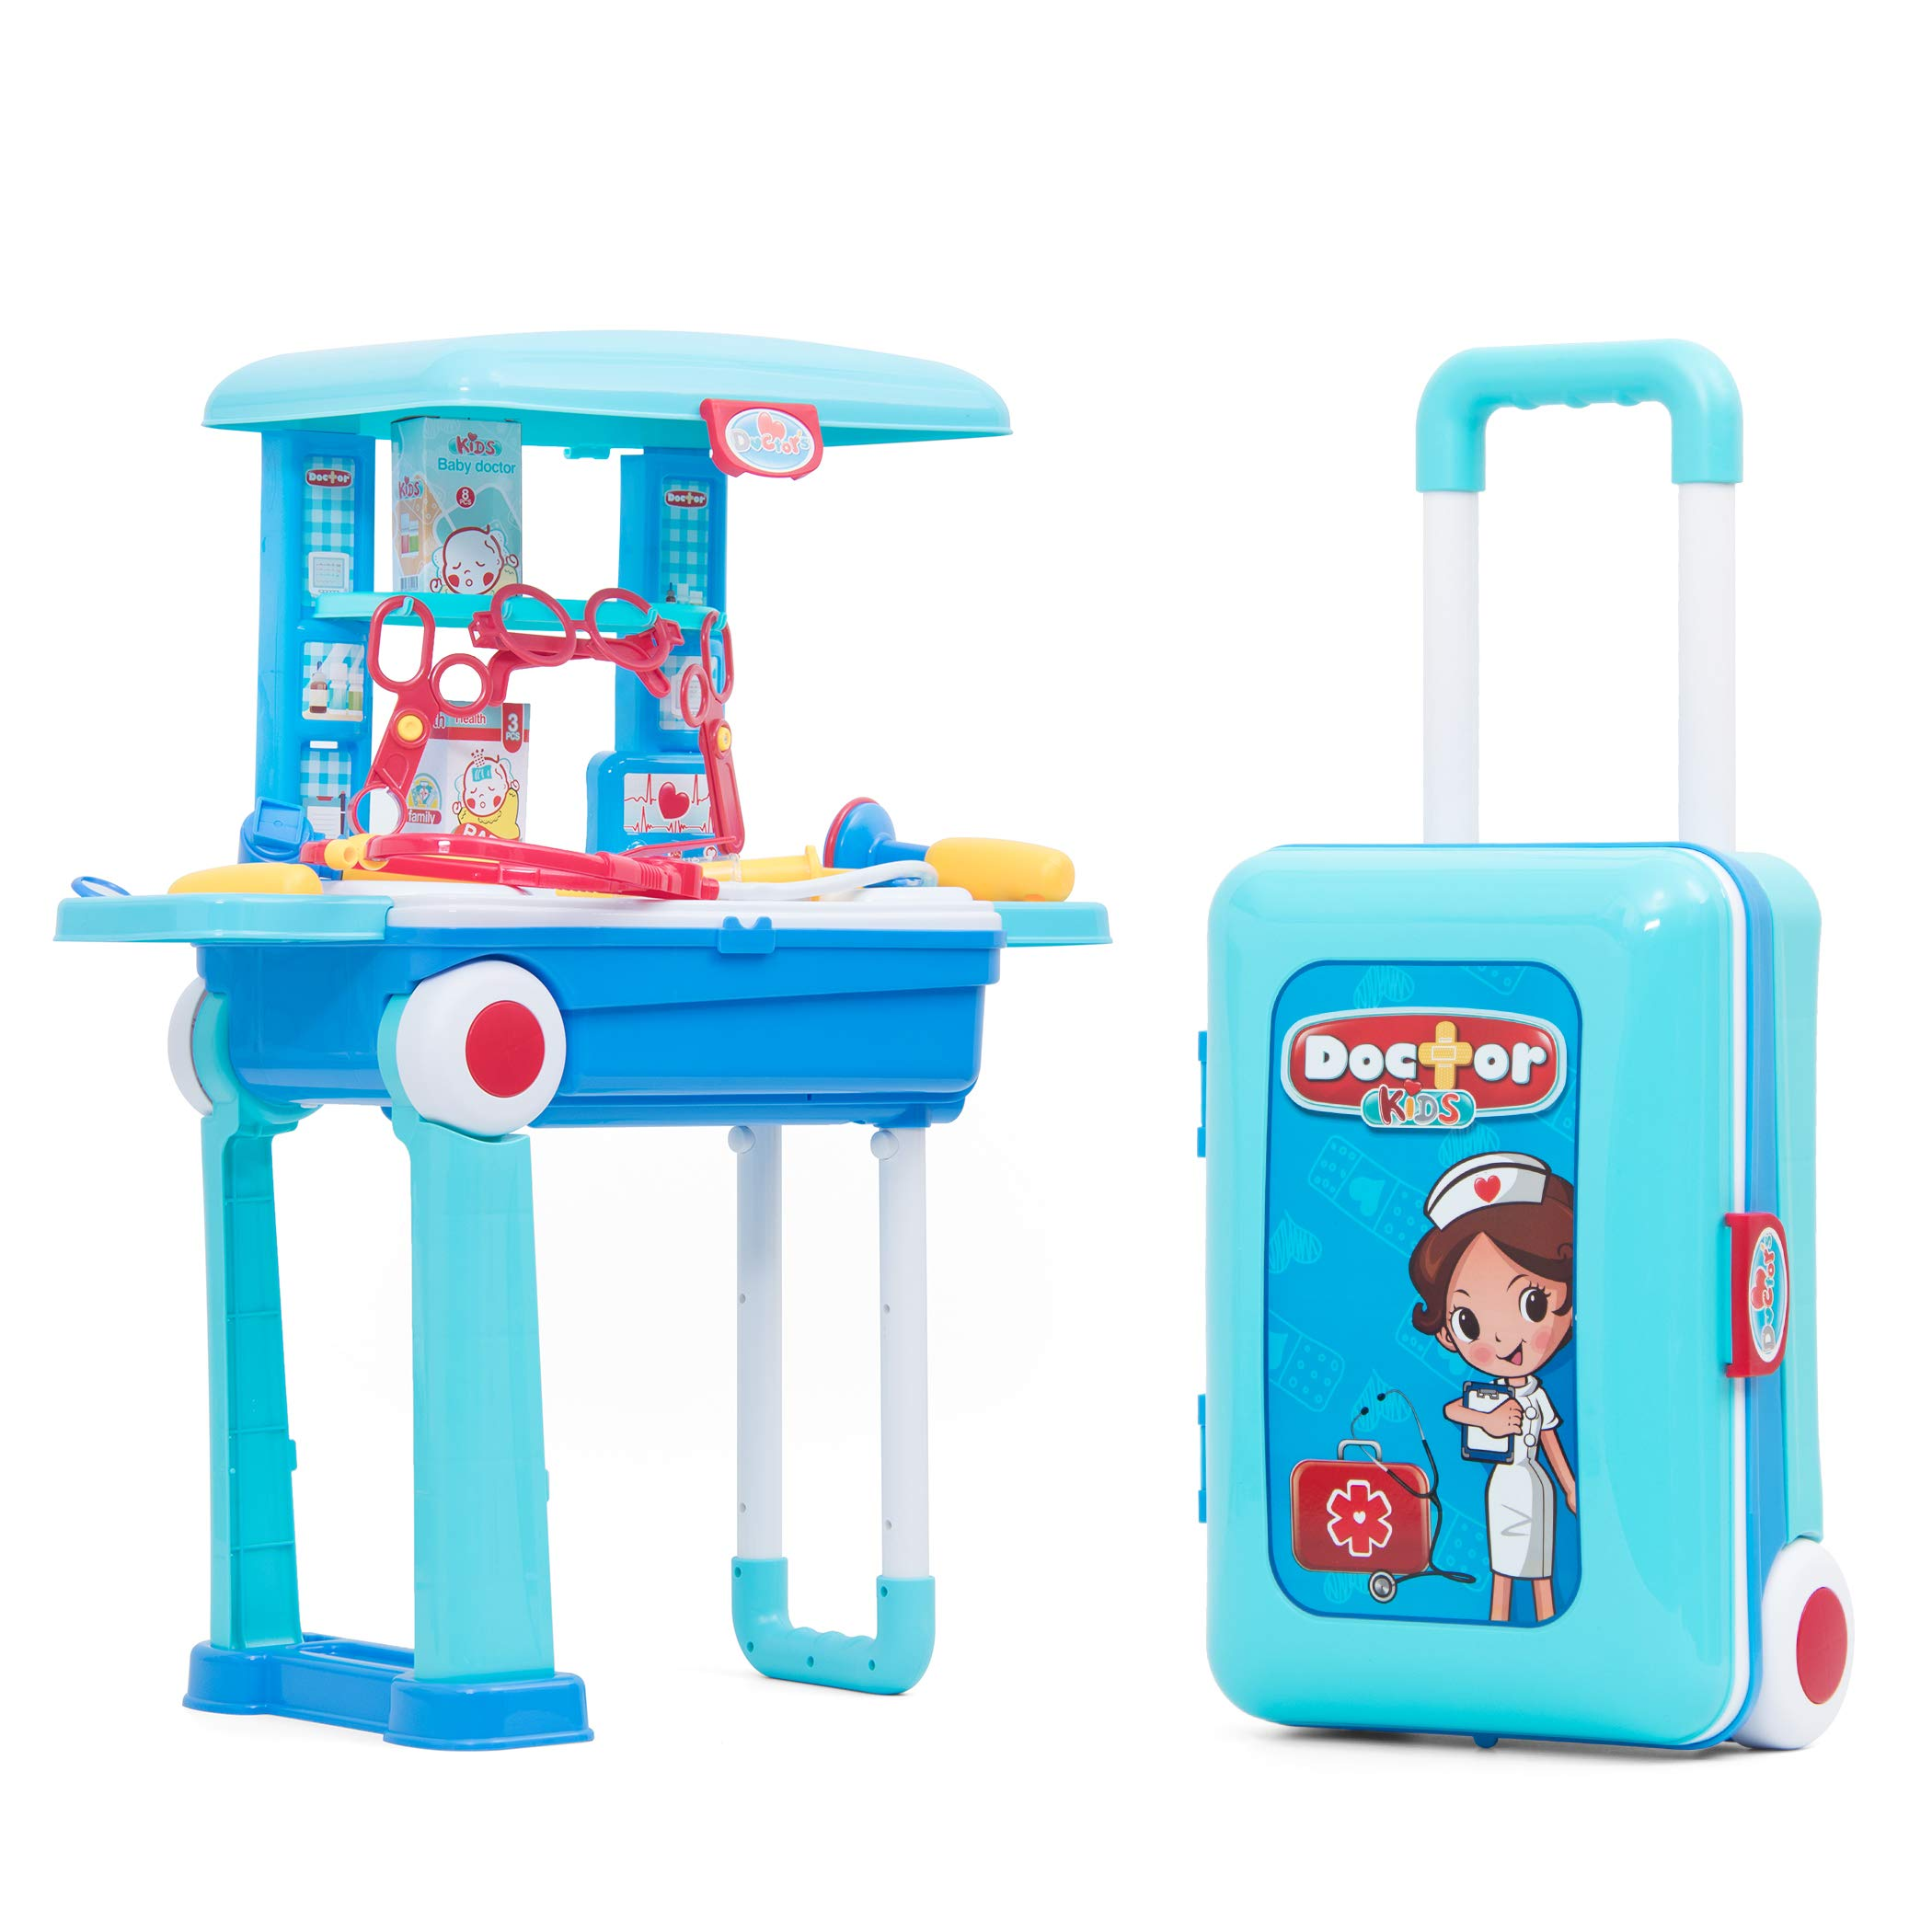 Fondear Portable Toy Play Set Cute Kitchen / Doctor / Tool Playset Fun Cooking Toy / Medical Kits / Bench Building for Toddlers (Doctor Playset) by Fondear